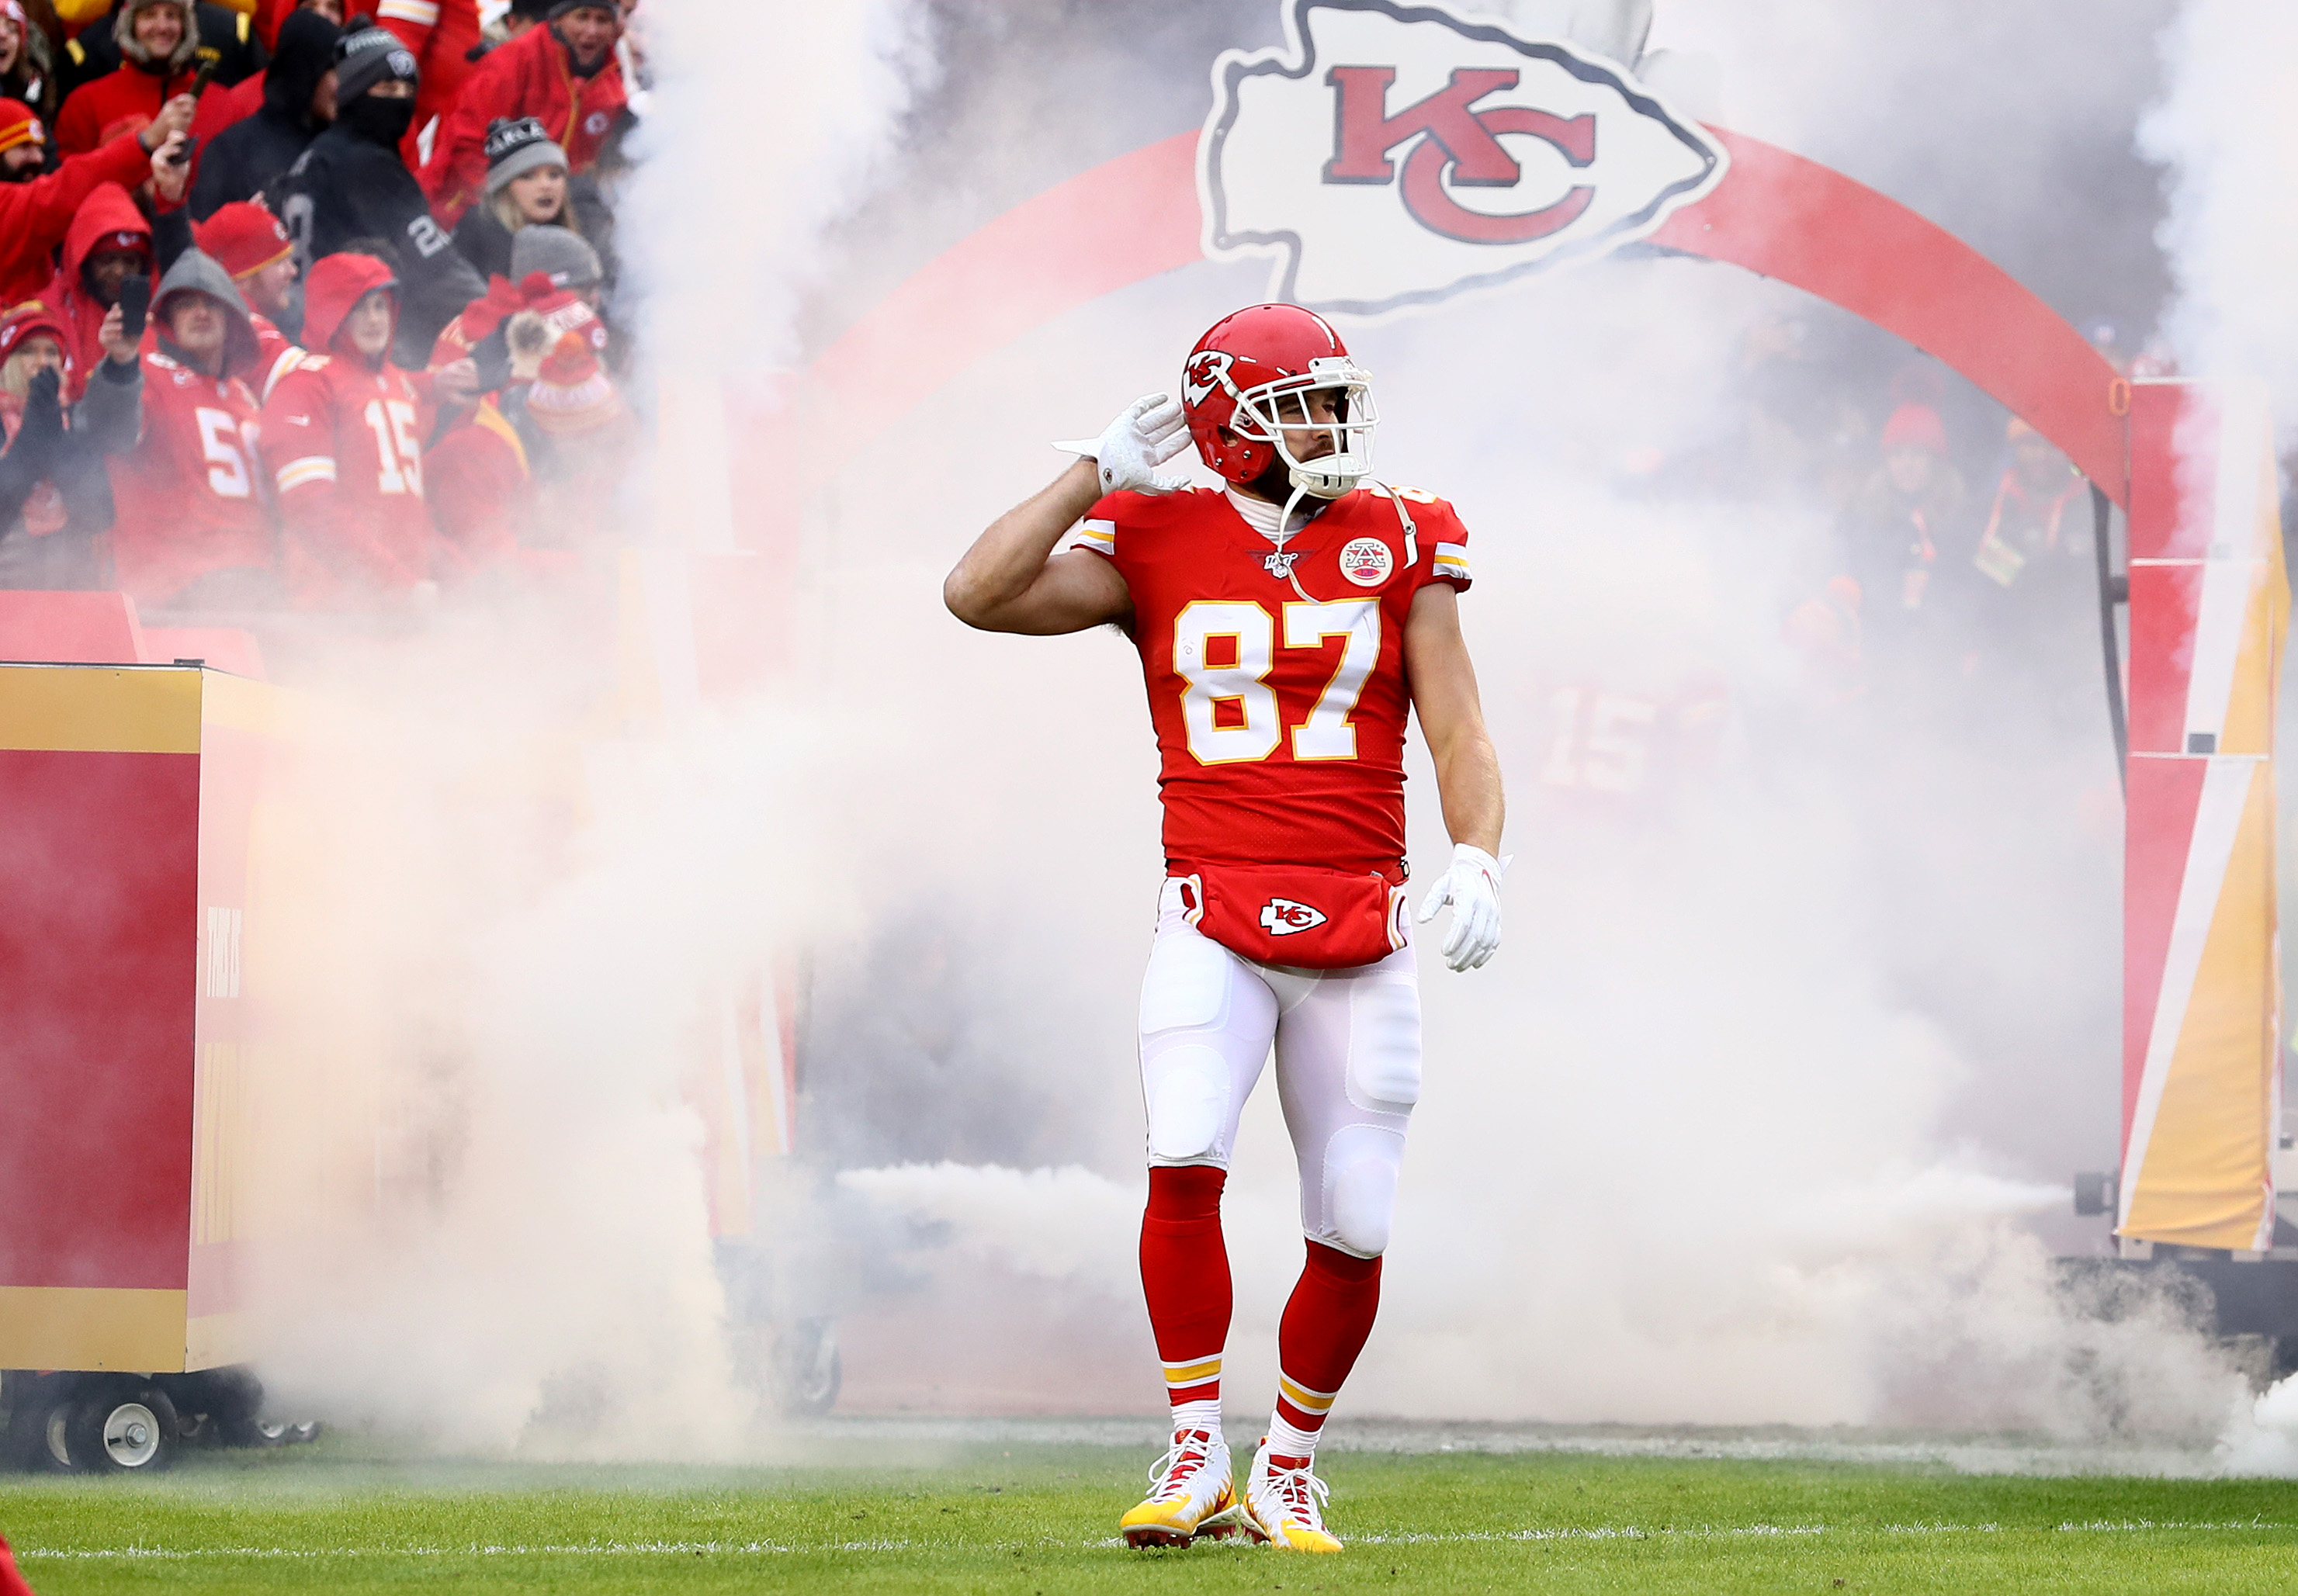 From a carefree kid to a team leader, Chiefs' Travis Kelce continues to grow and evolve | FOX 4 Kansas City WDAF-TV | News, Weather, Sports